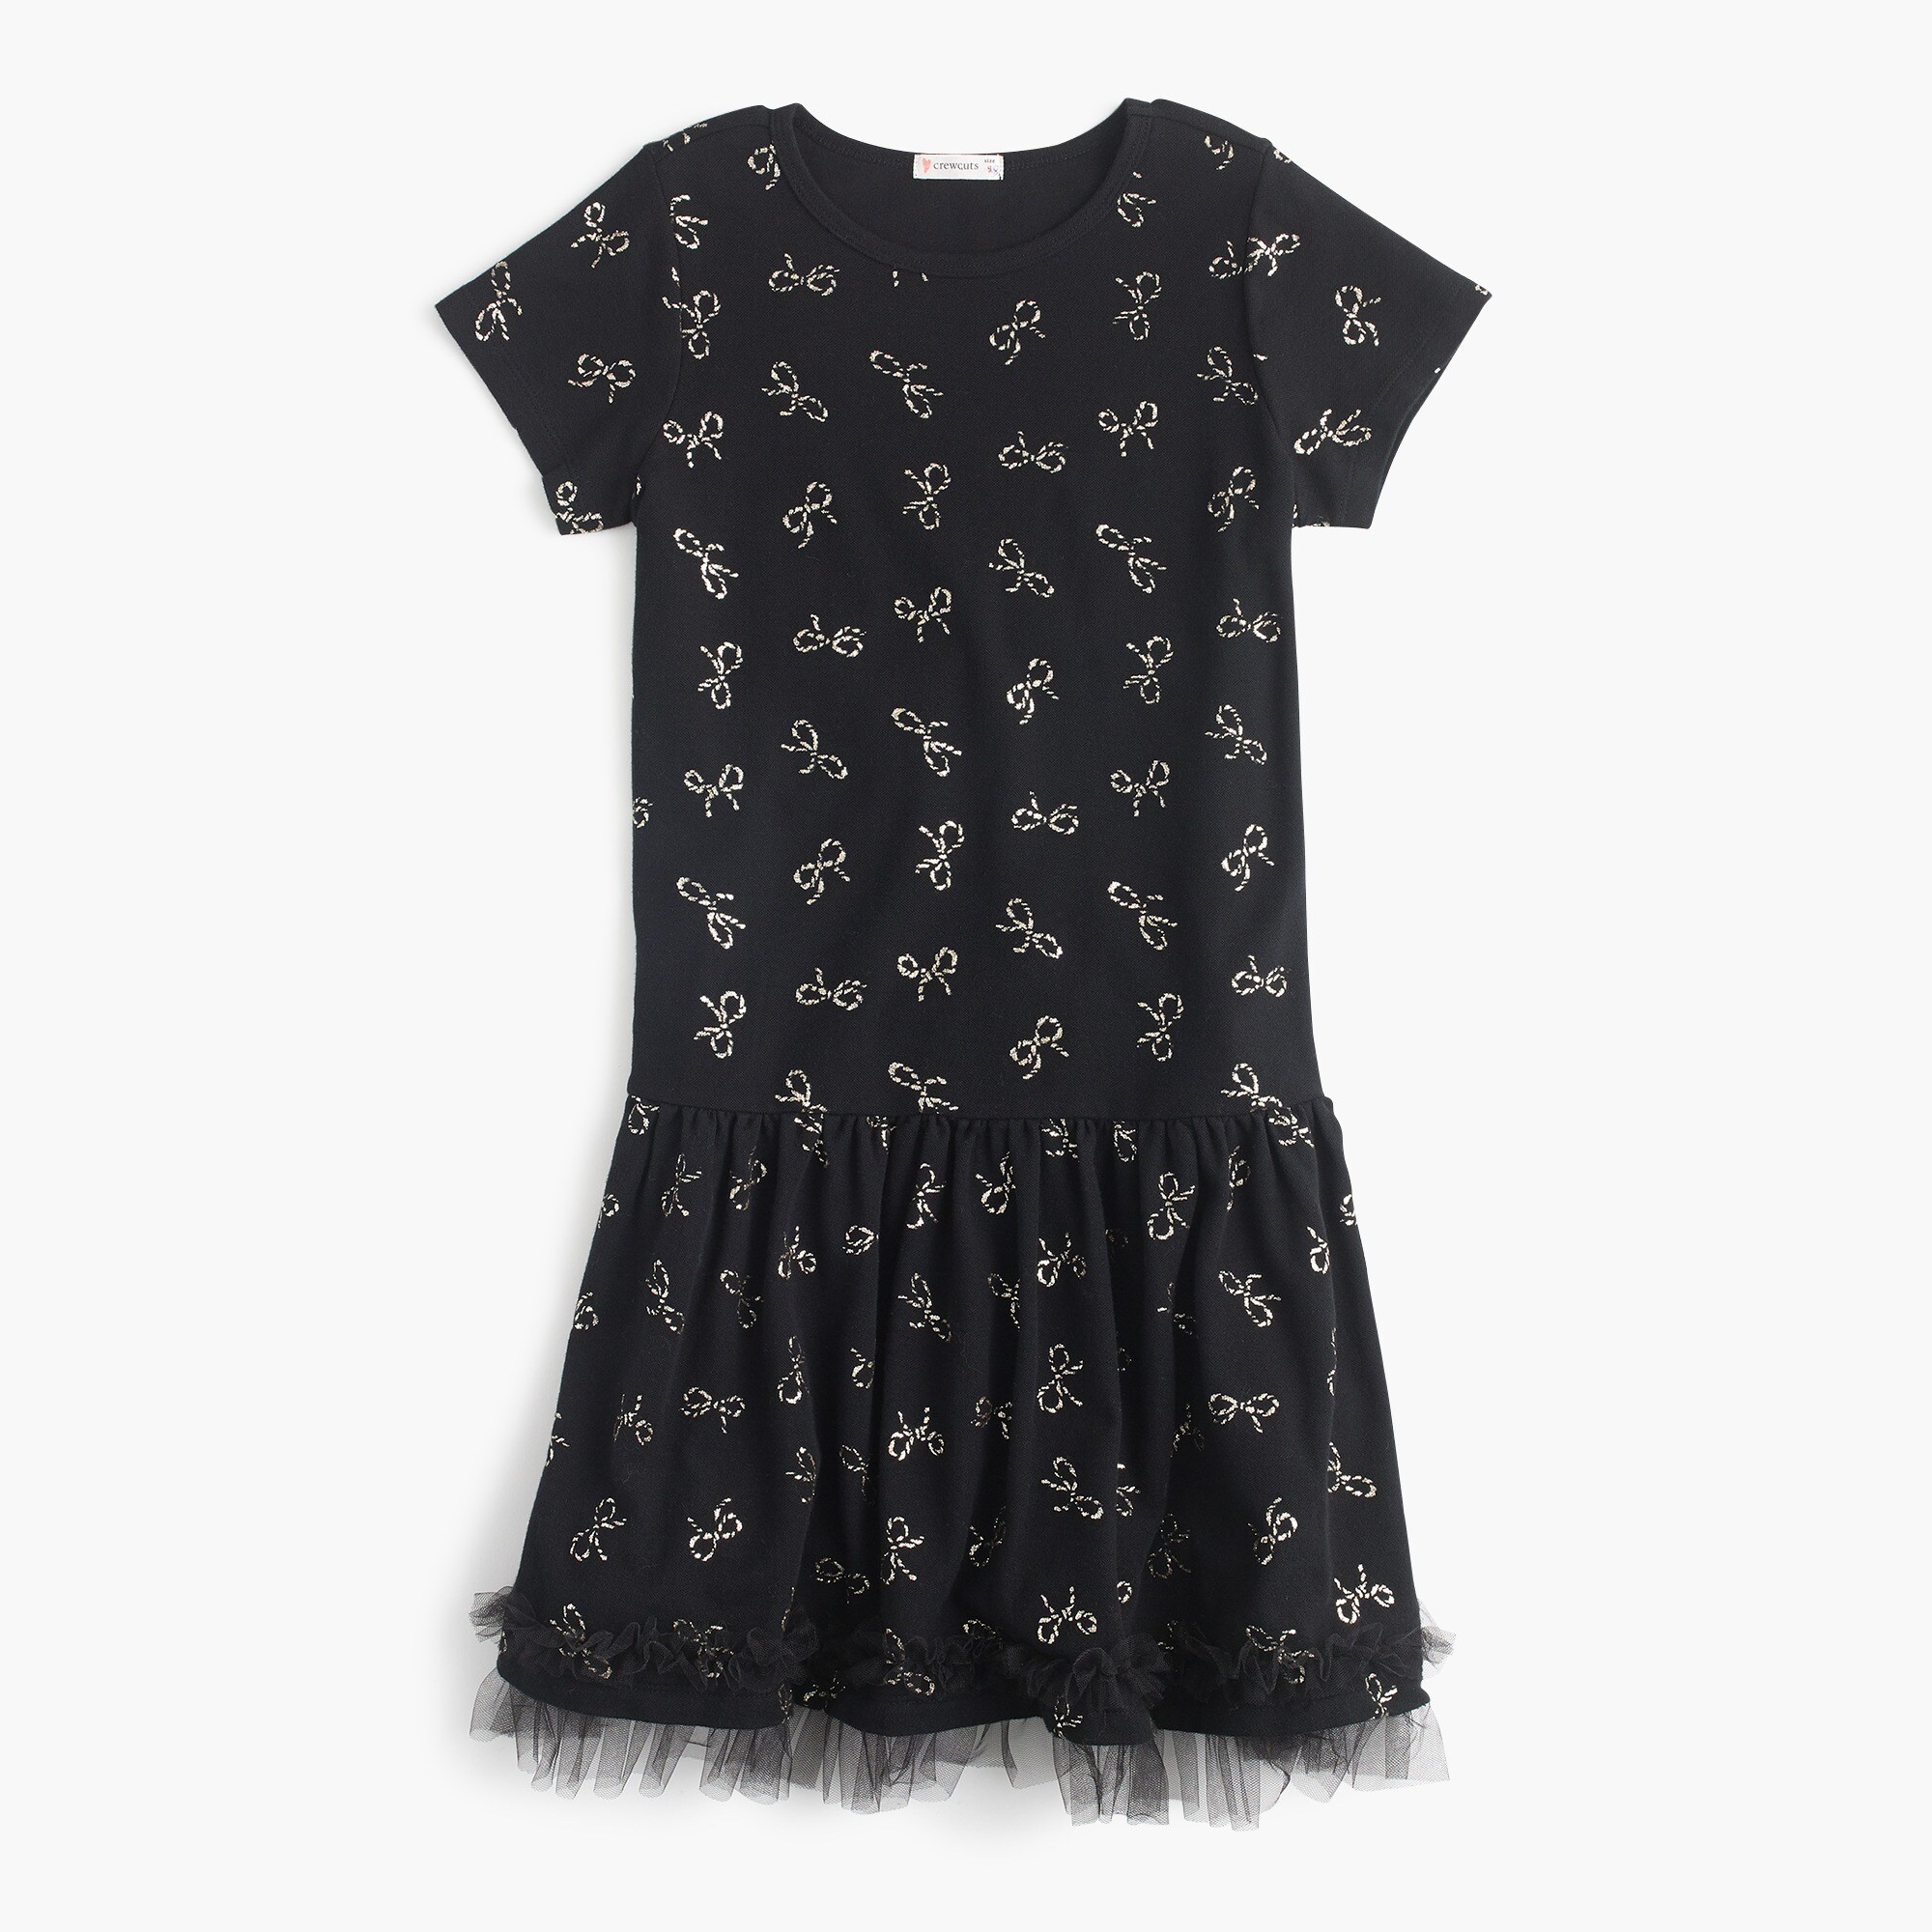 Girls' bow-print dress girl dresses c